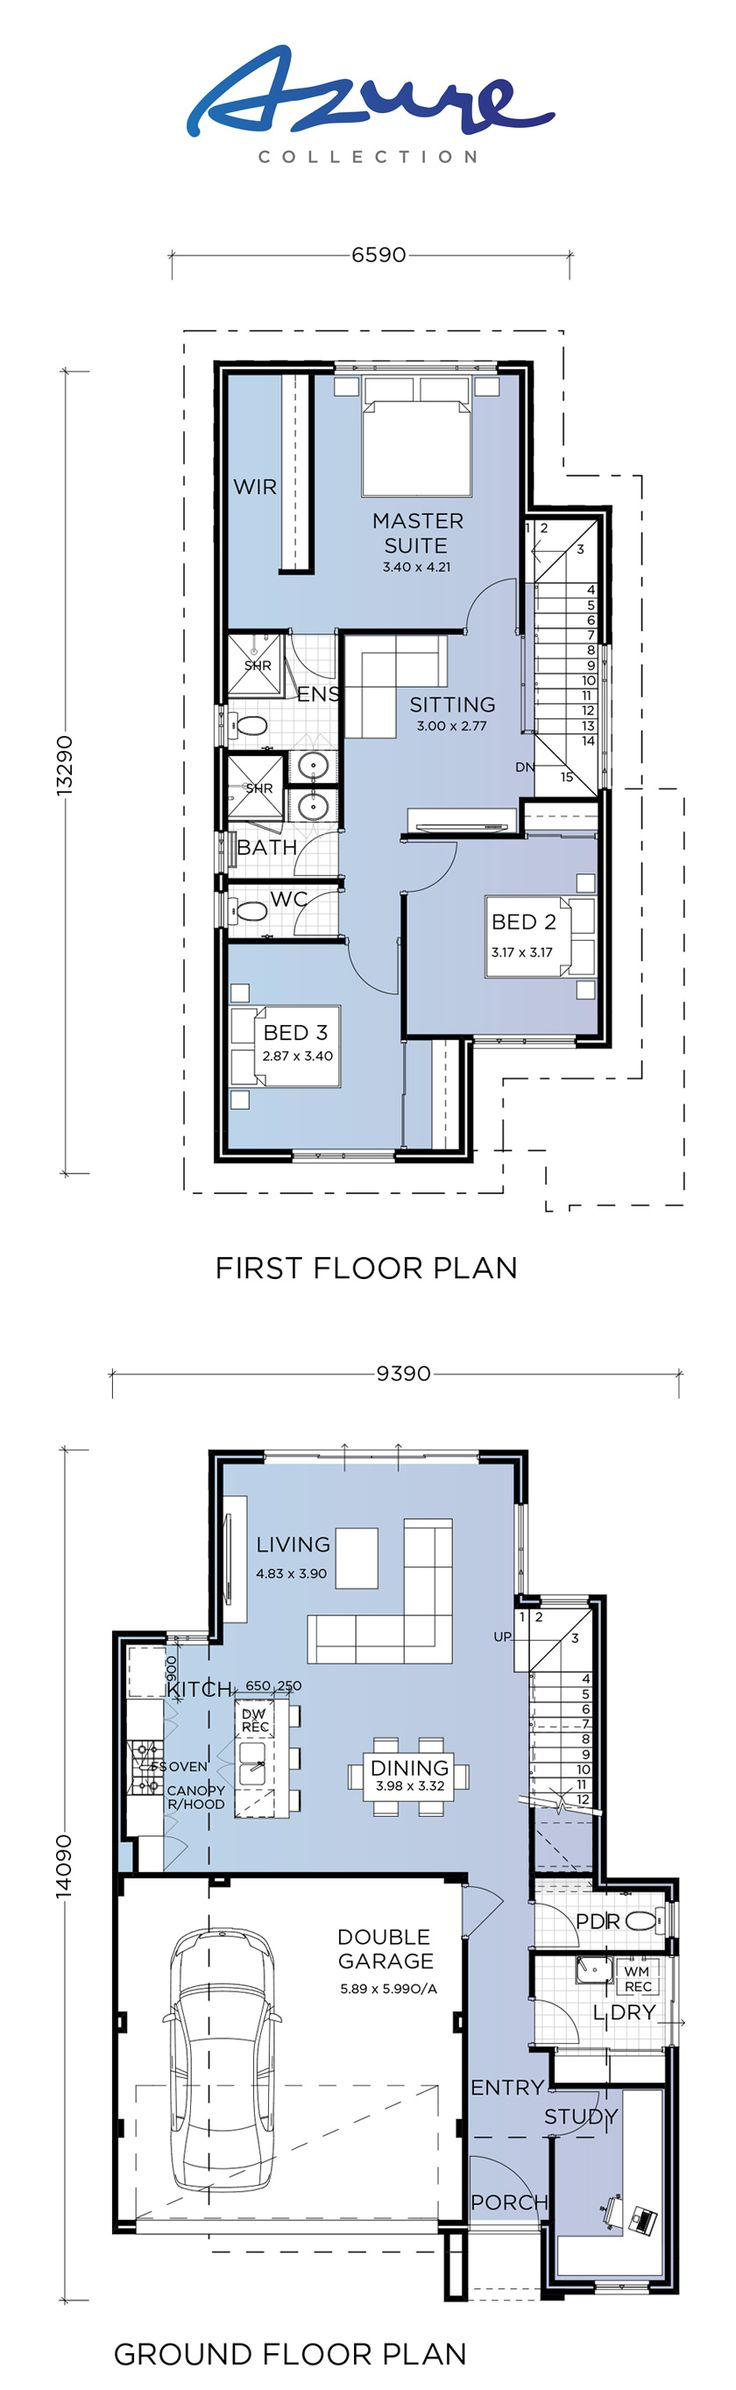 134 best narrow lot floorplans images on pinterest small houses marseille azure collection study nookopen plan